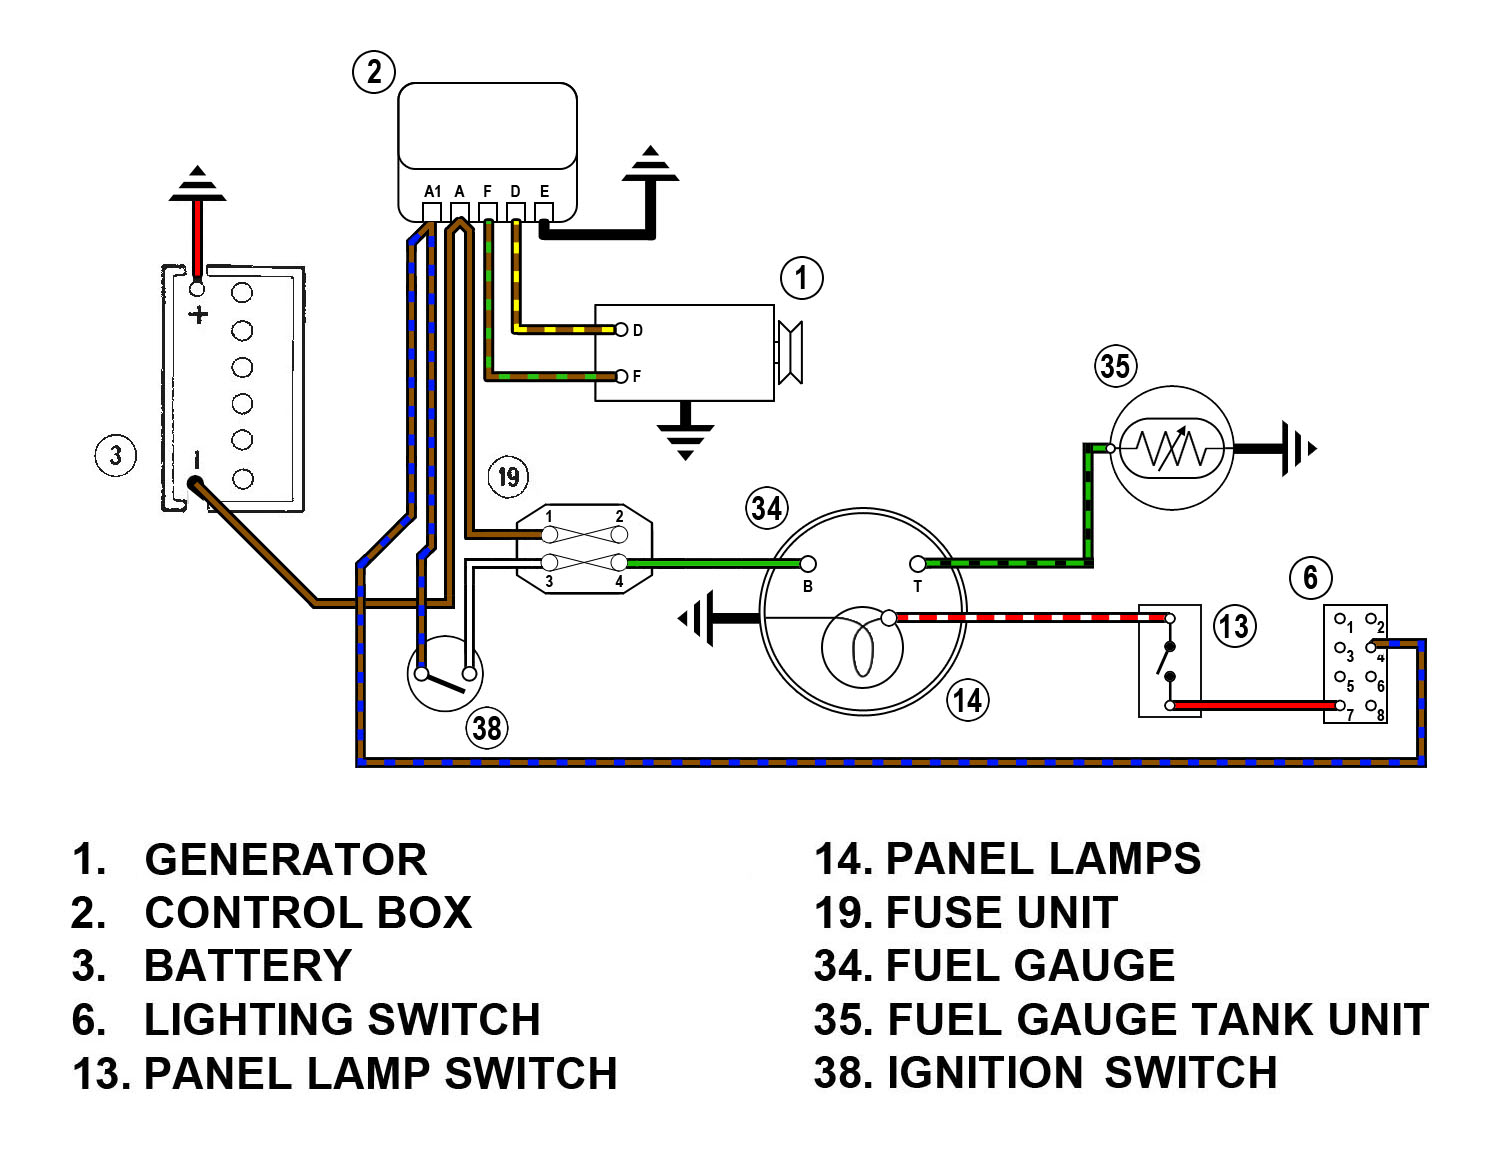 FuelGaugeWiringSpMkII_MGMkI gauge wiring diagram veethree gauges wiring diagrams \u2022 wiring sunpro gauges wiring diagram at mr168.co